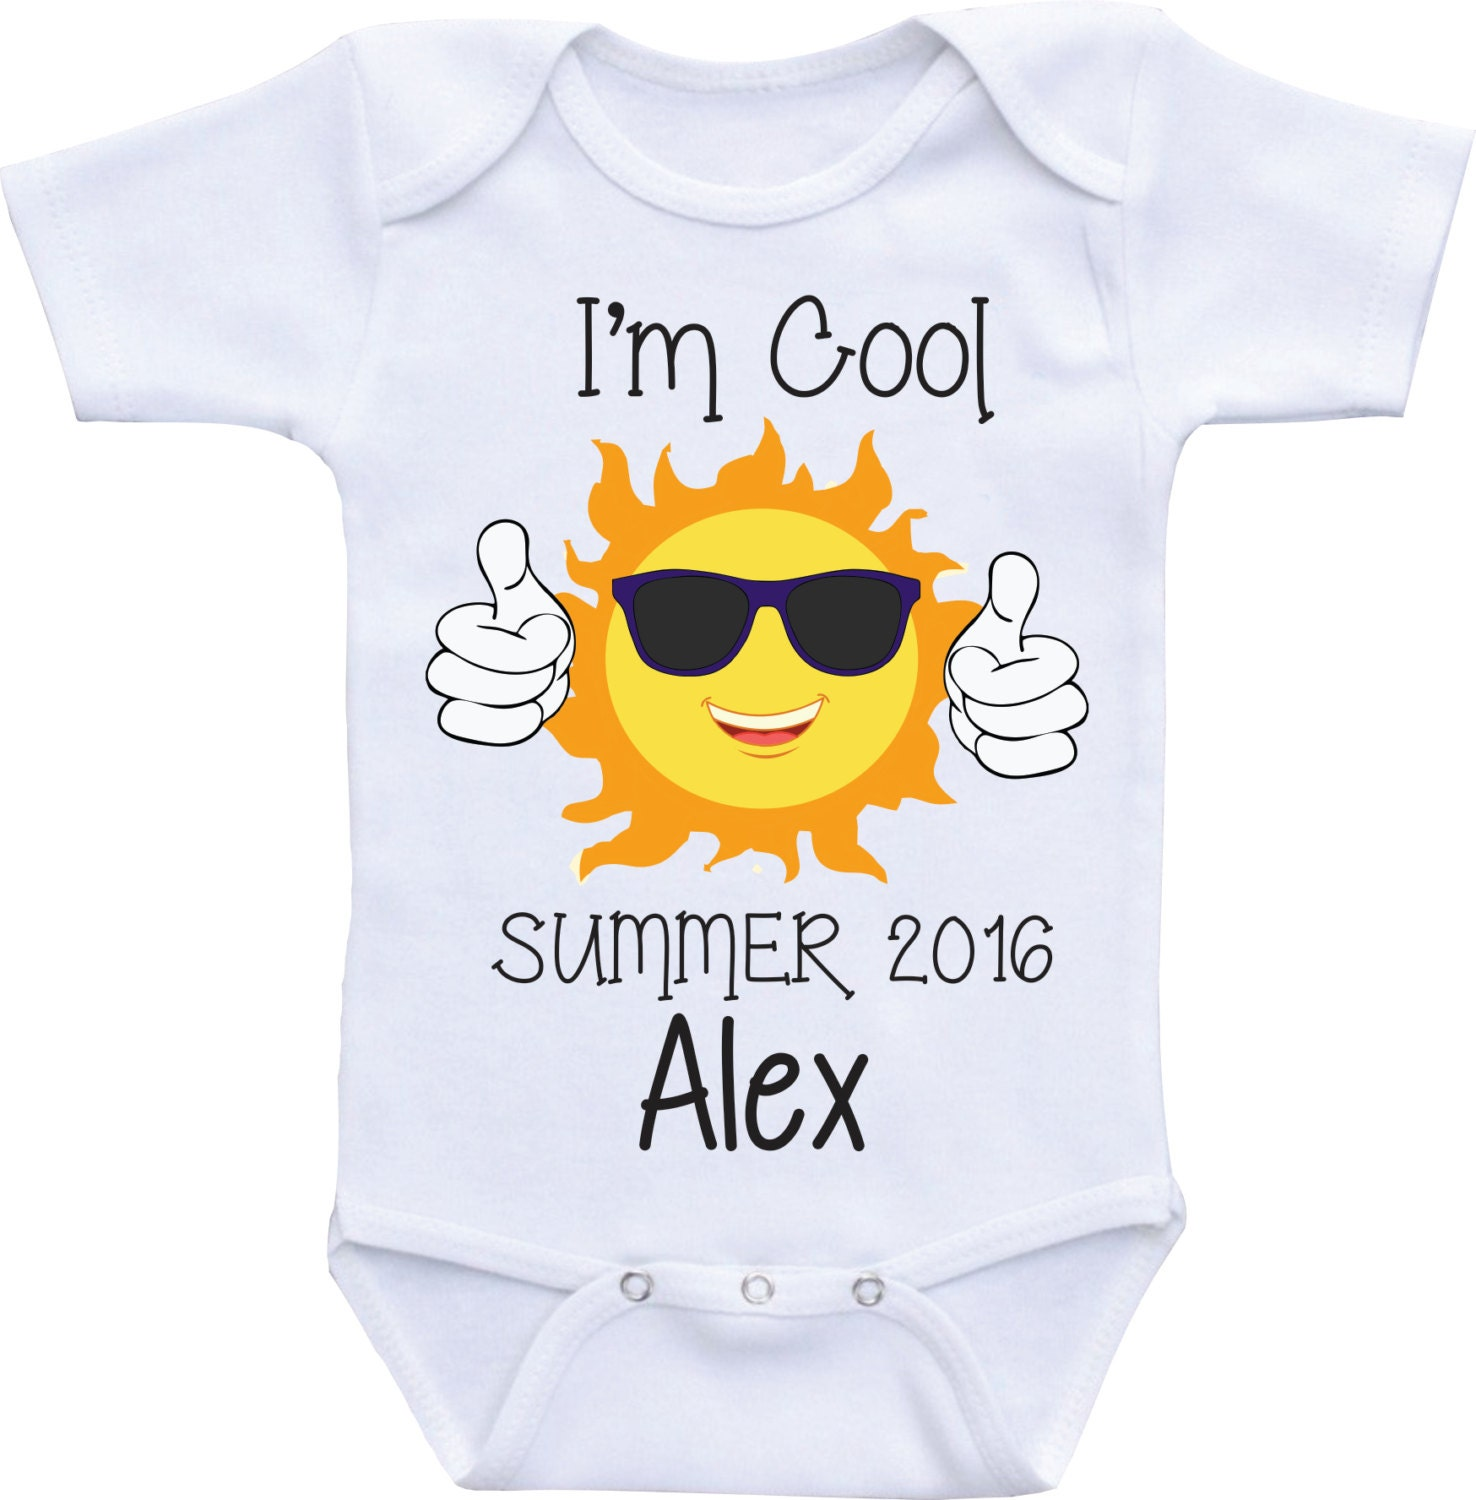 Baby Gifts For Boys : Personalized baby gifts for boys onsies girl